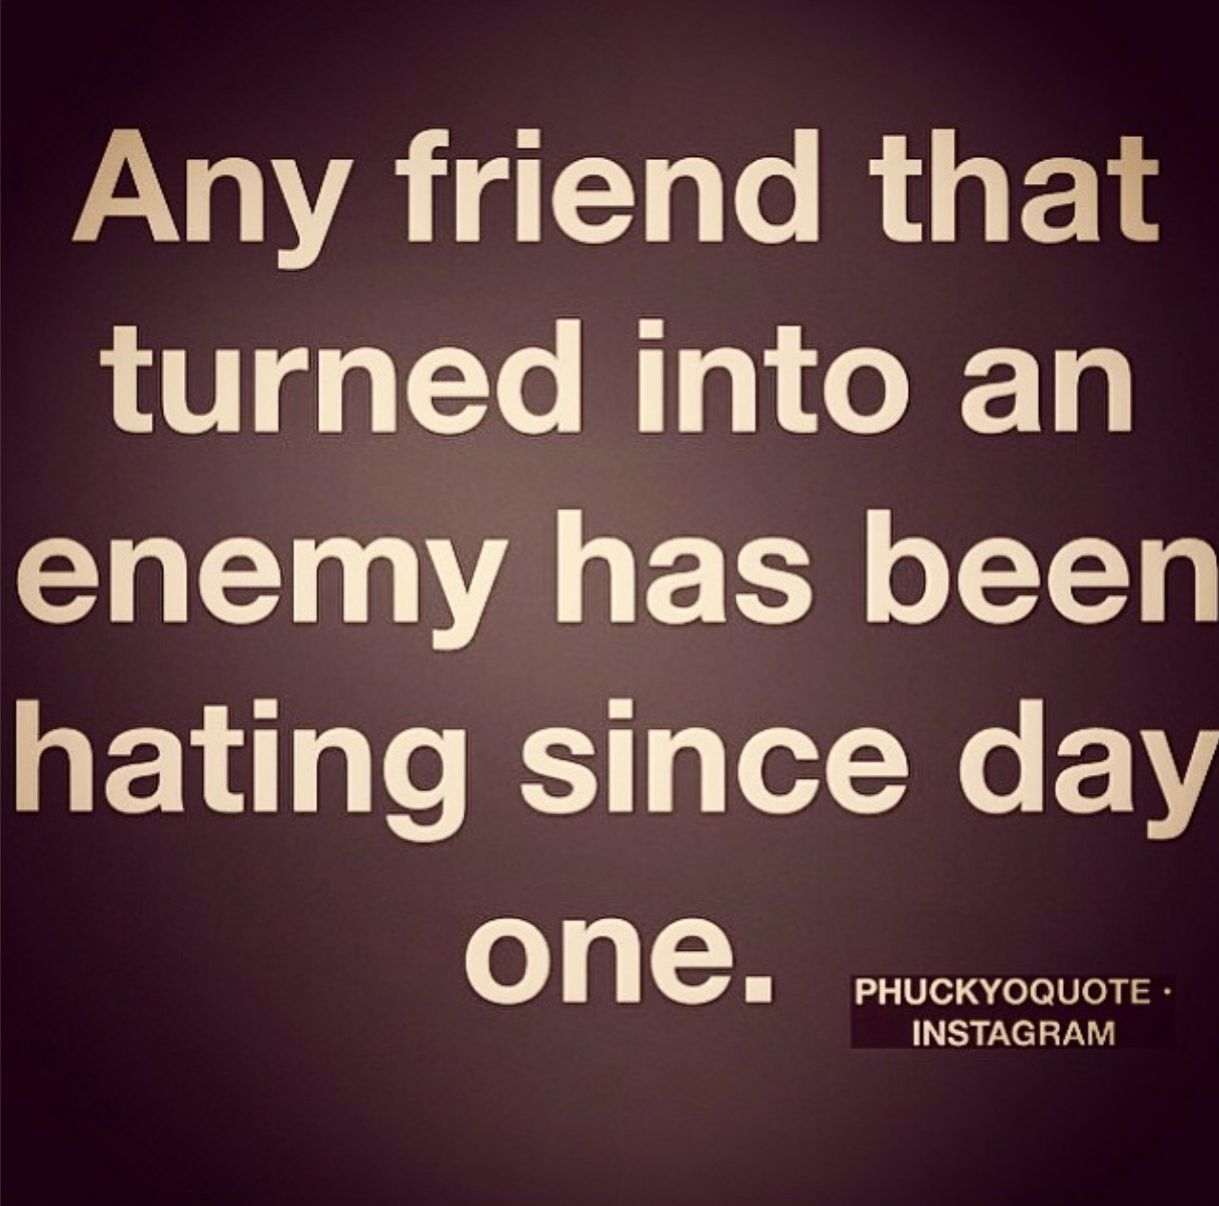 Quotes About Jealousy In Friendship Any Friend That Turned Into An Enemy Has Been Hating Since Day One